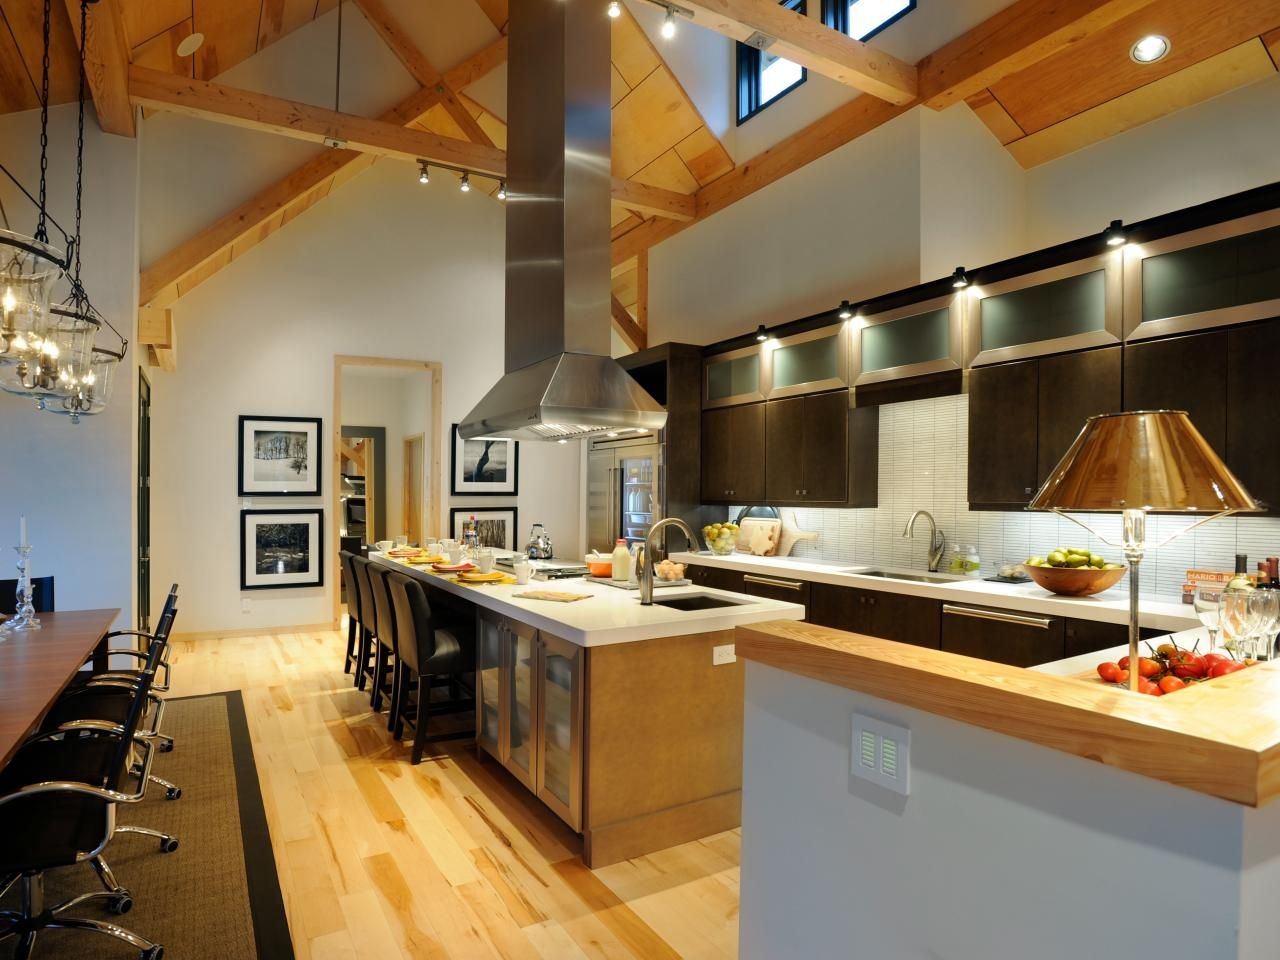 Uncategorized Hgtv Dream Kitchen Designs whats the design plan for hgtv smart home 2016 kitchens 2016